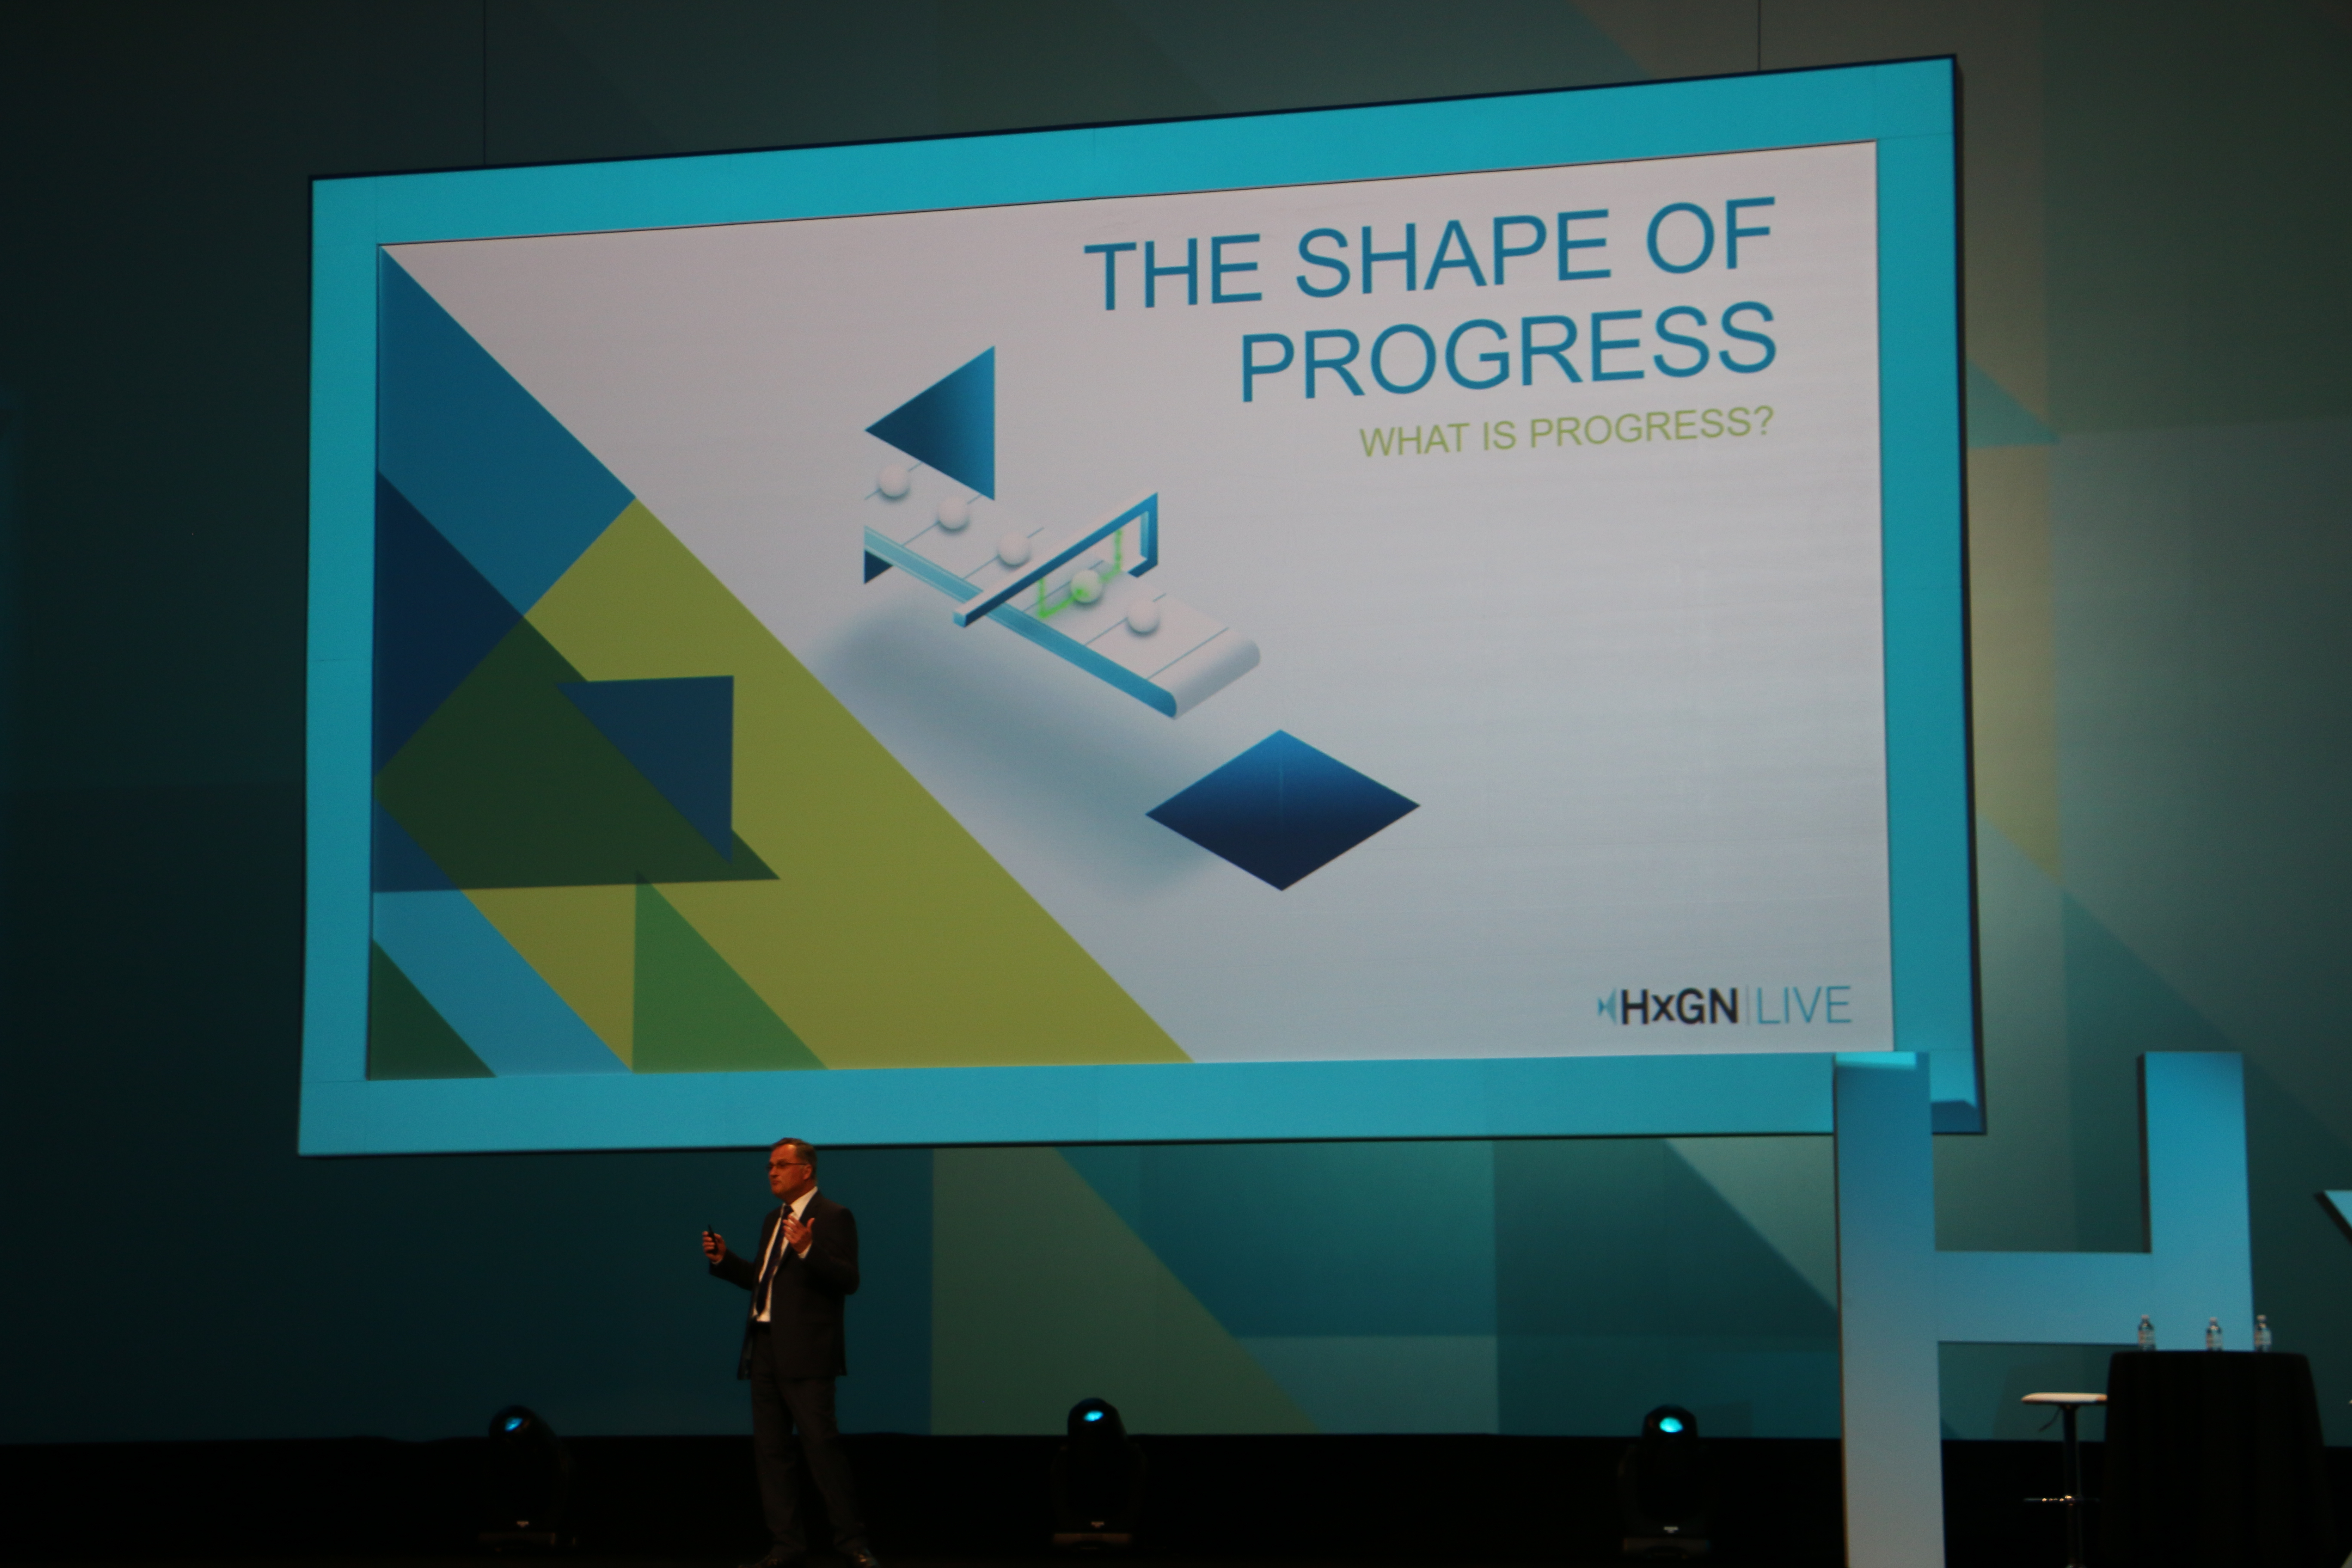 The Shape of Progress at HxGN LIVE